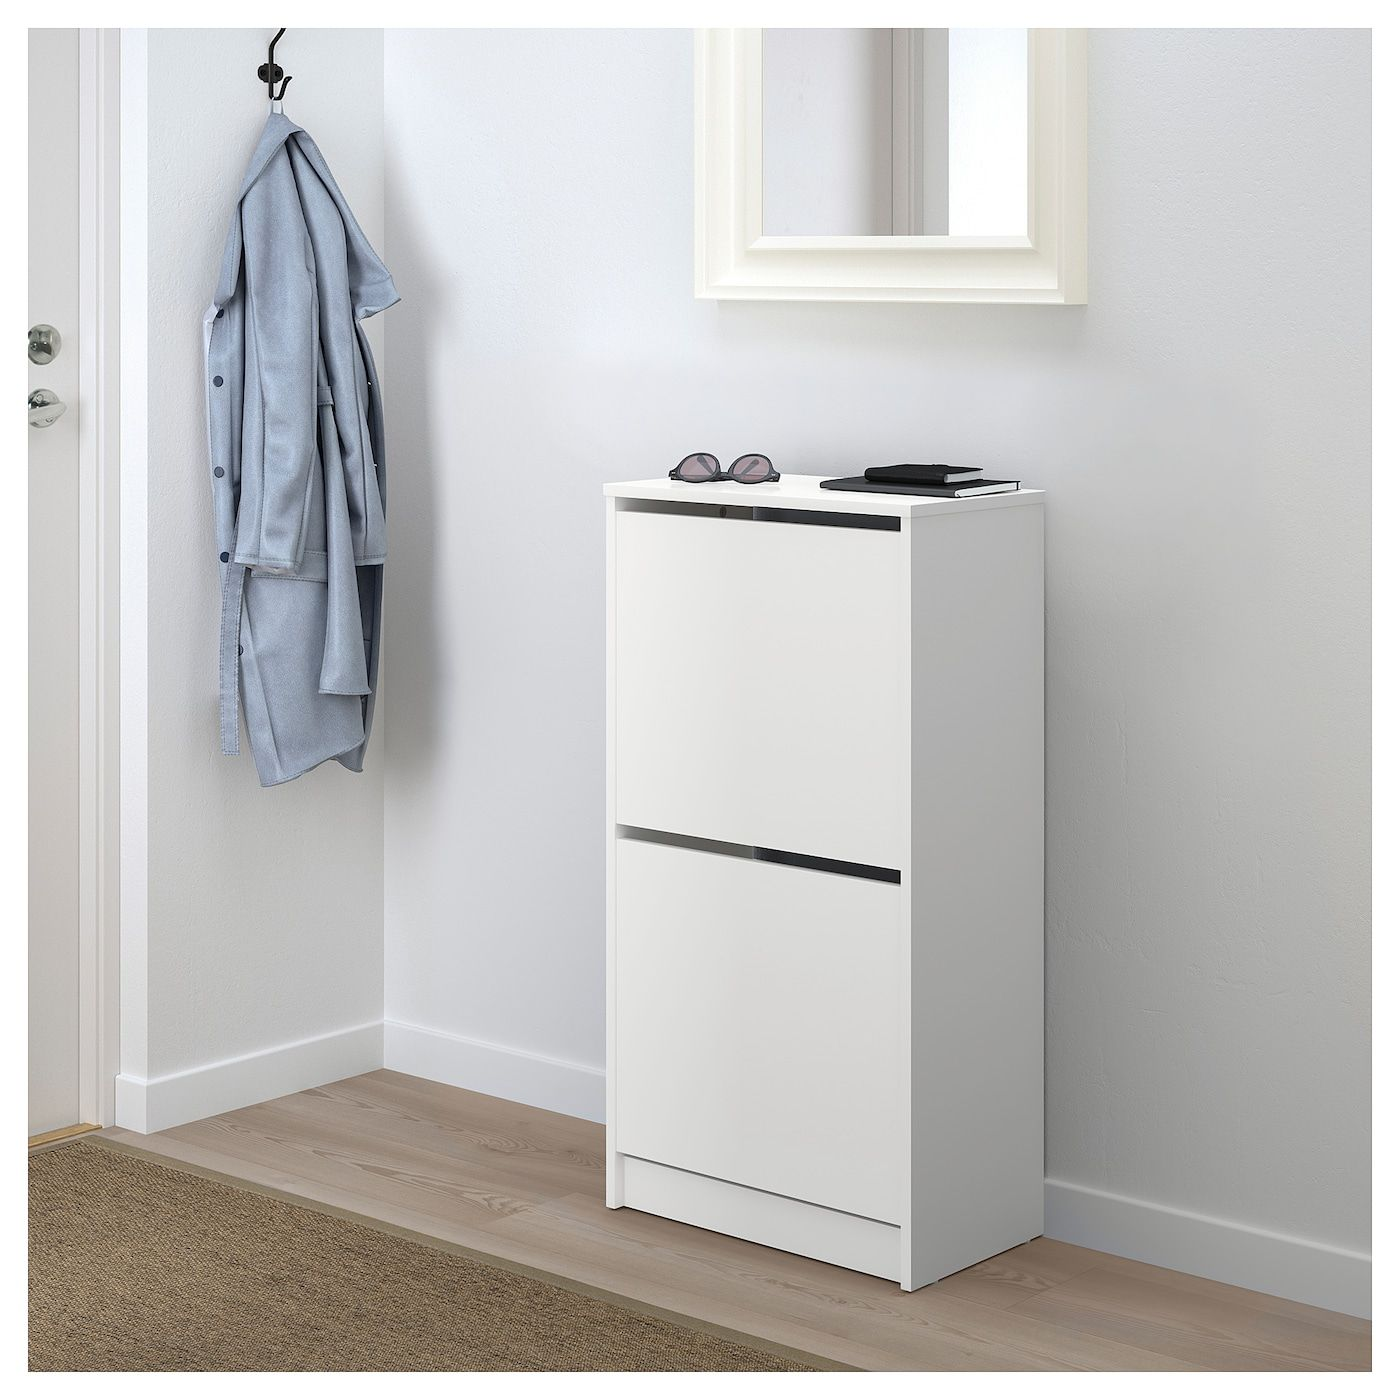 Ikea Bissa White Shoe Cabinet With 2 Compartments Shoe Cabinet